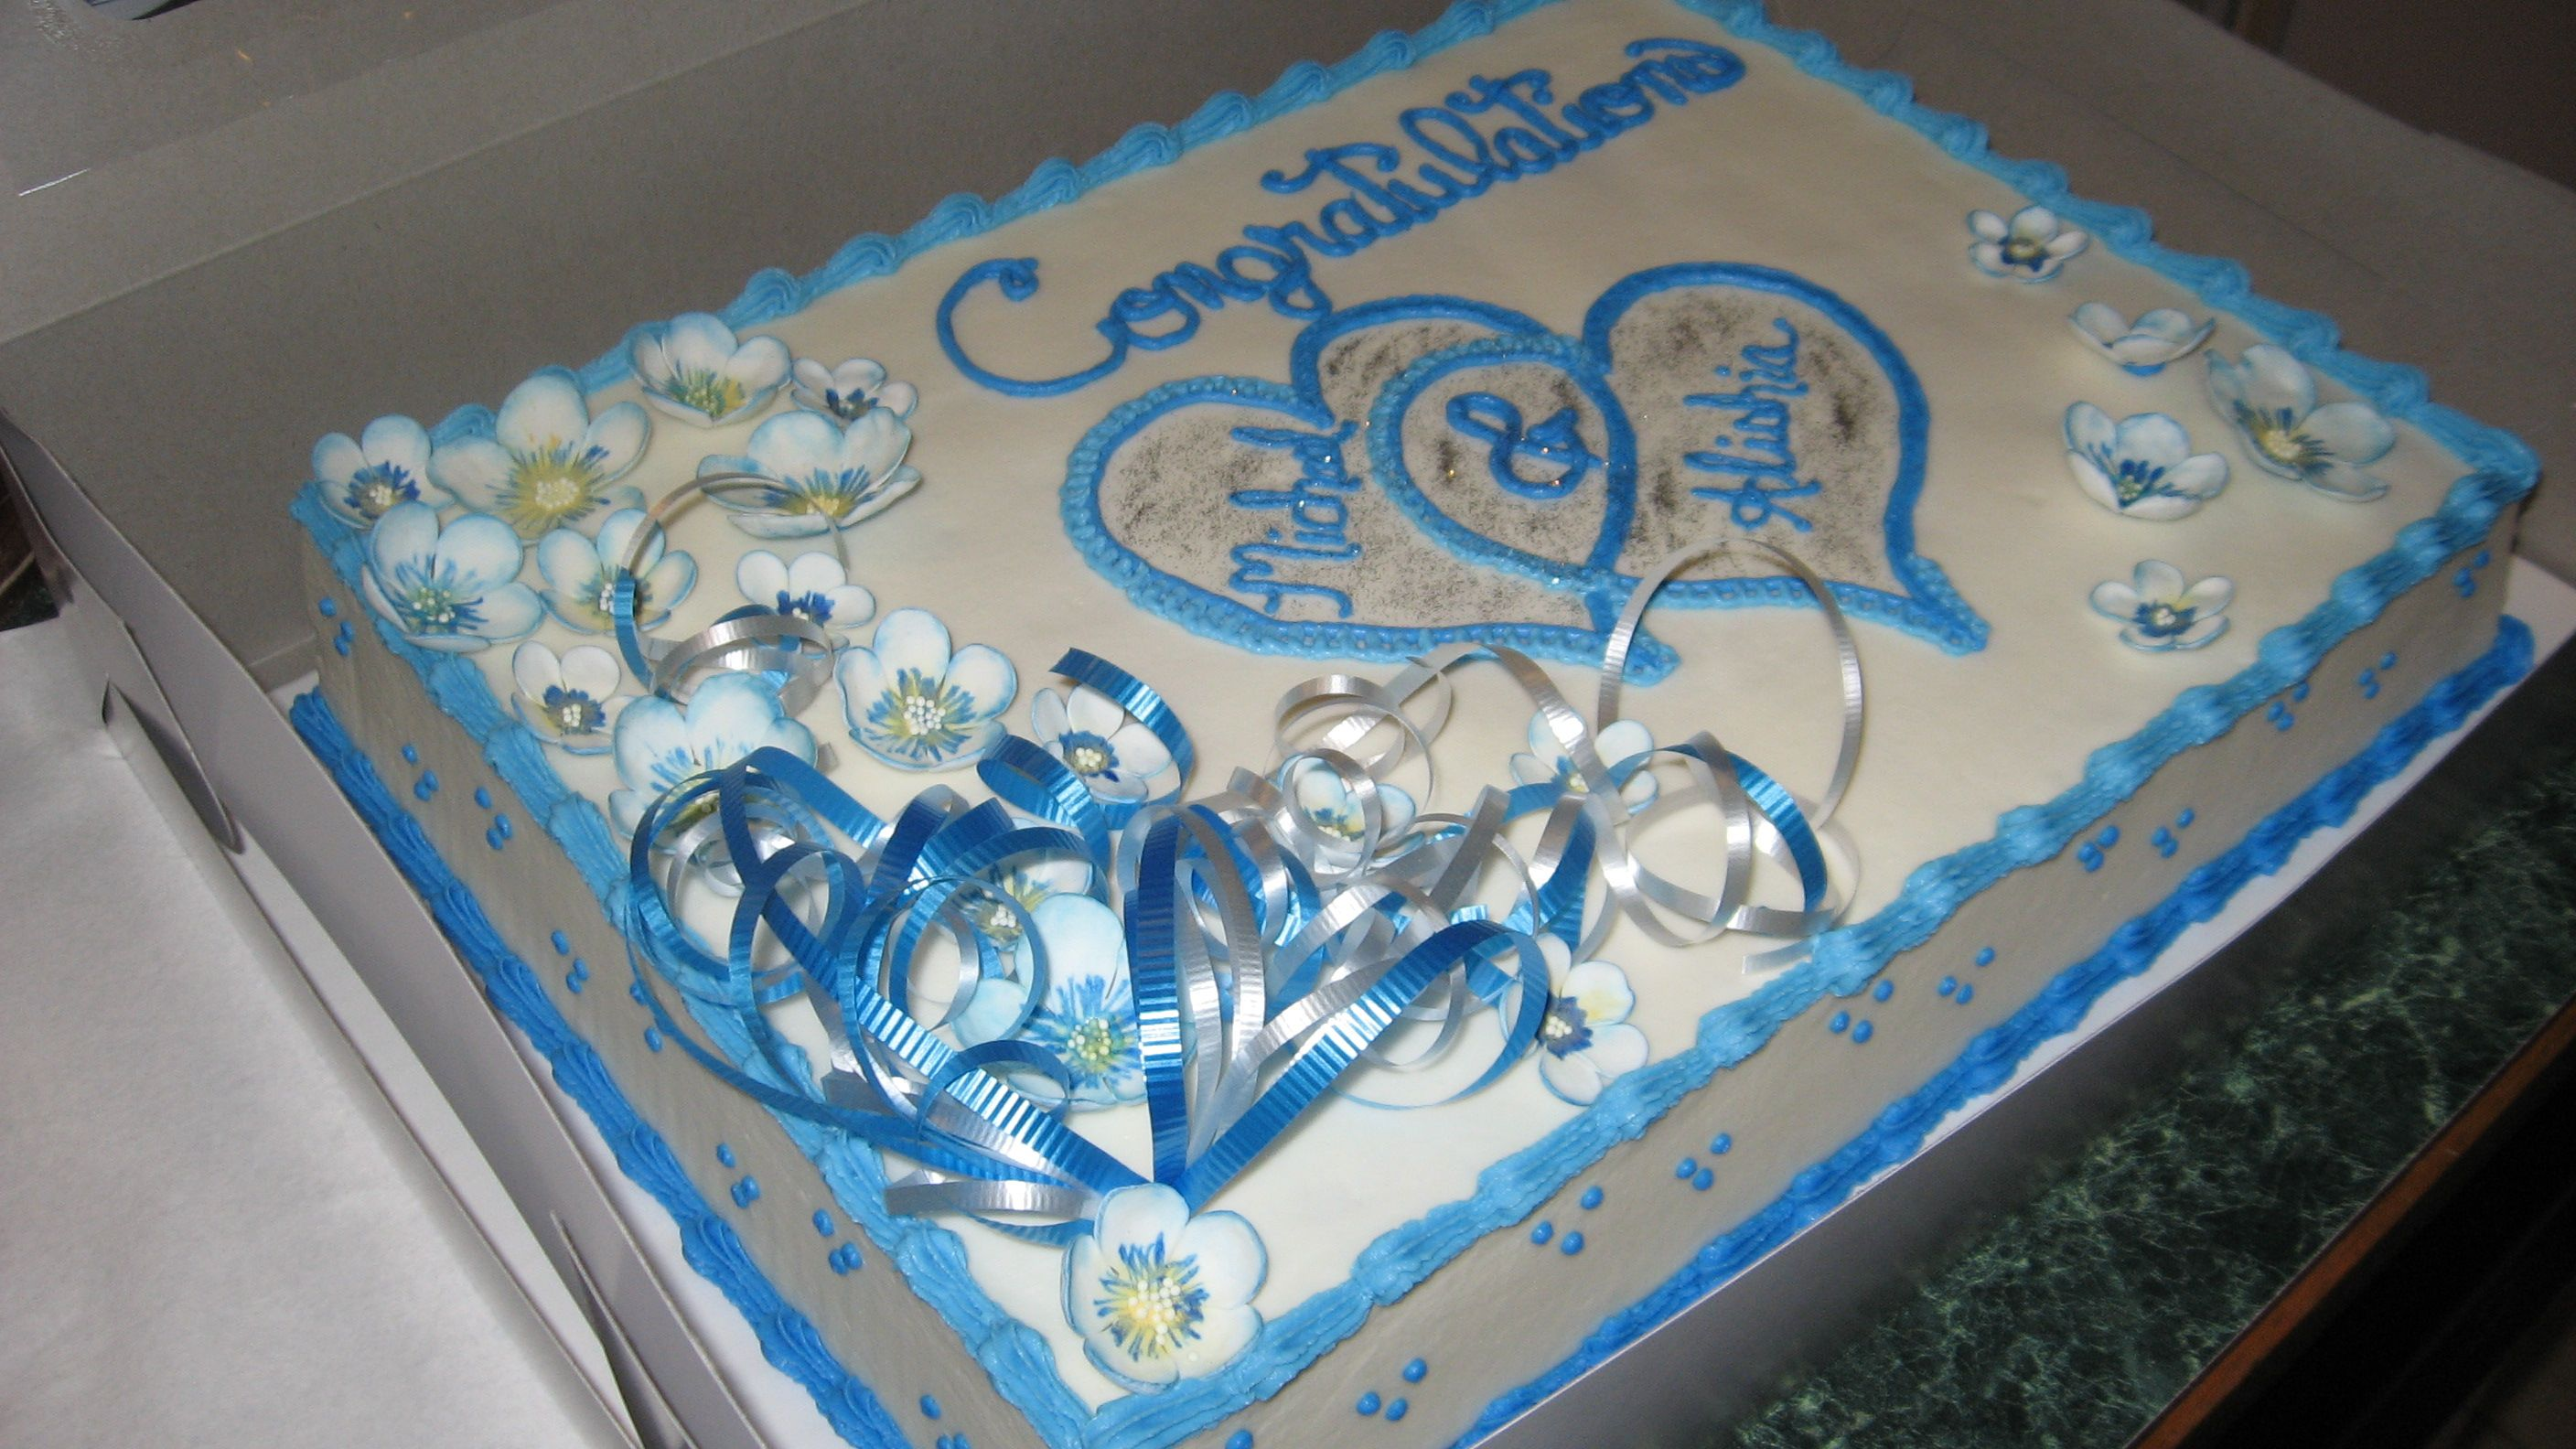 Shades of blue and silver Wedding Shower cake. Wedding